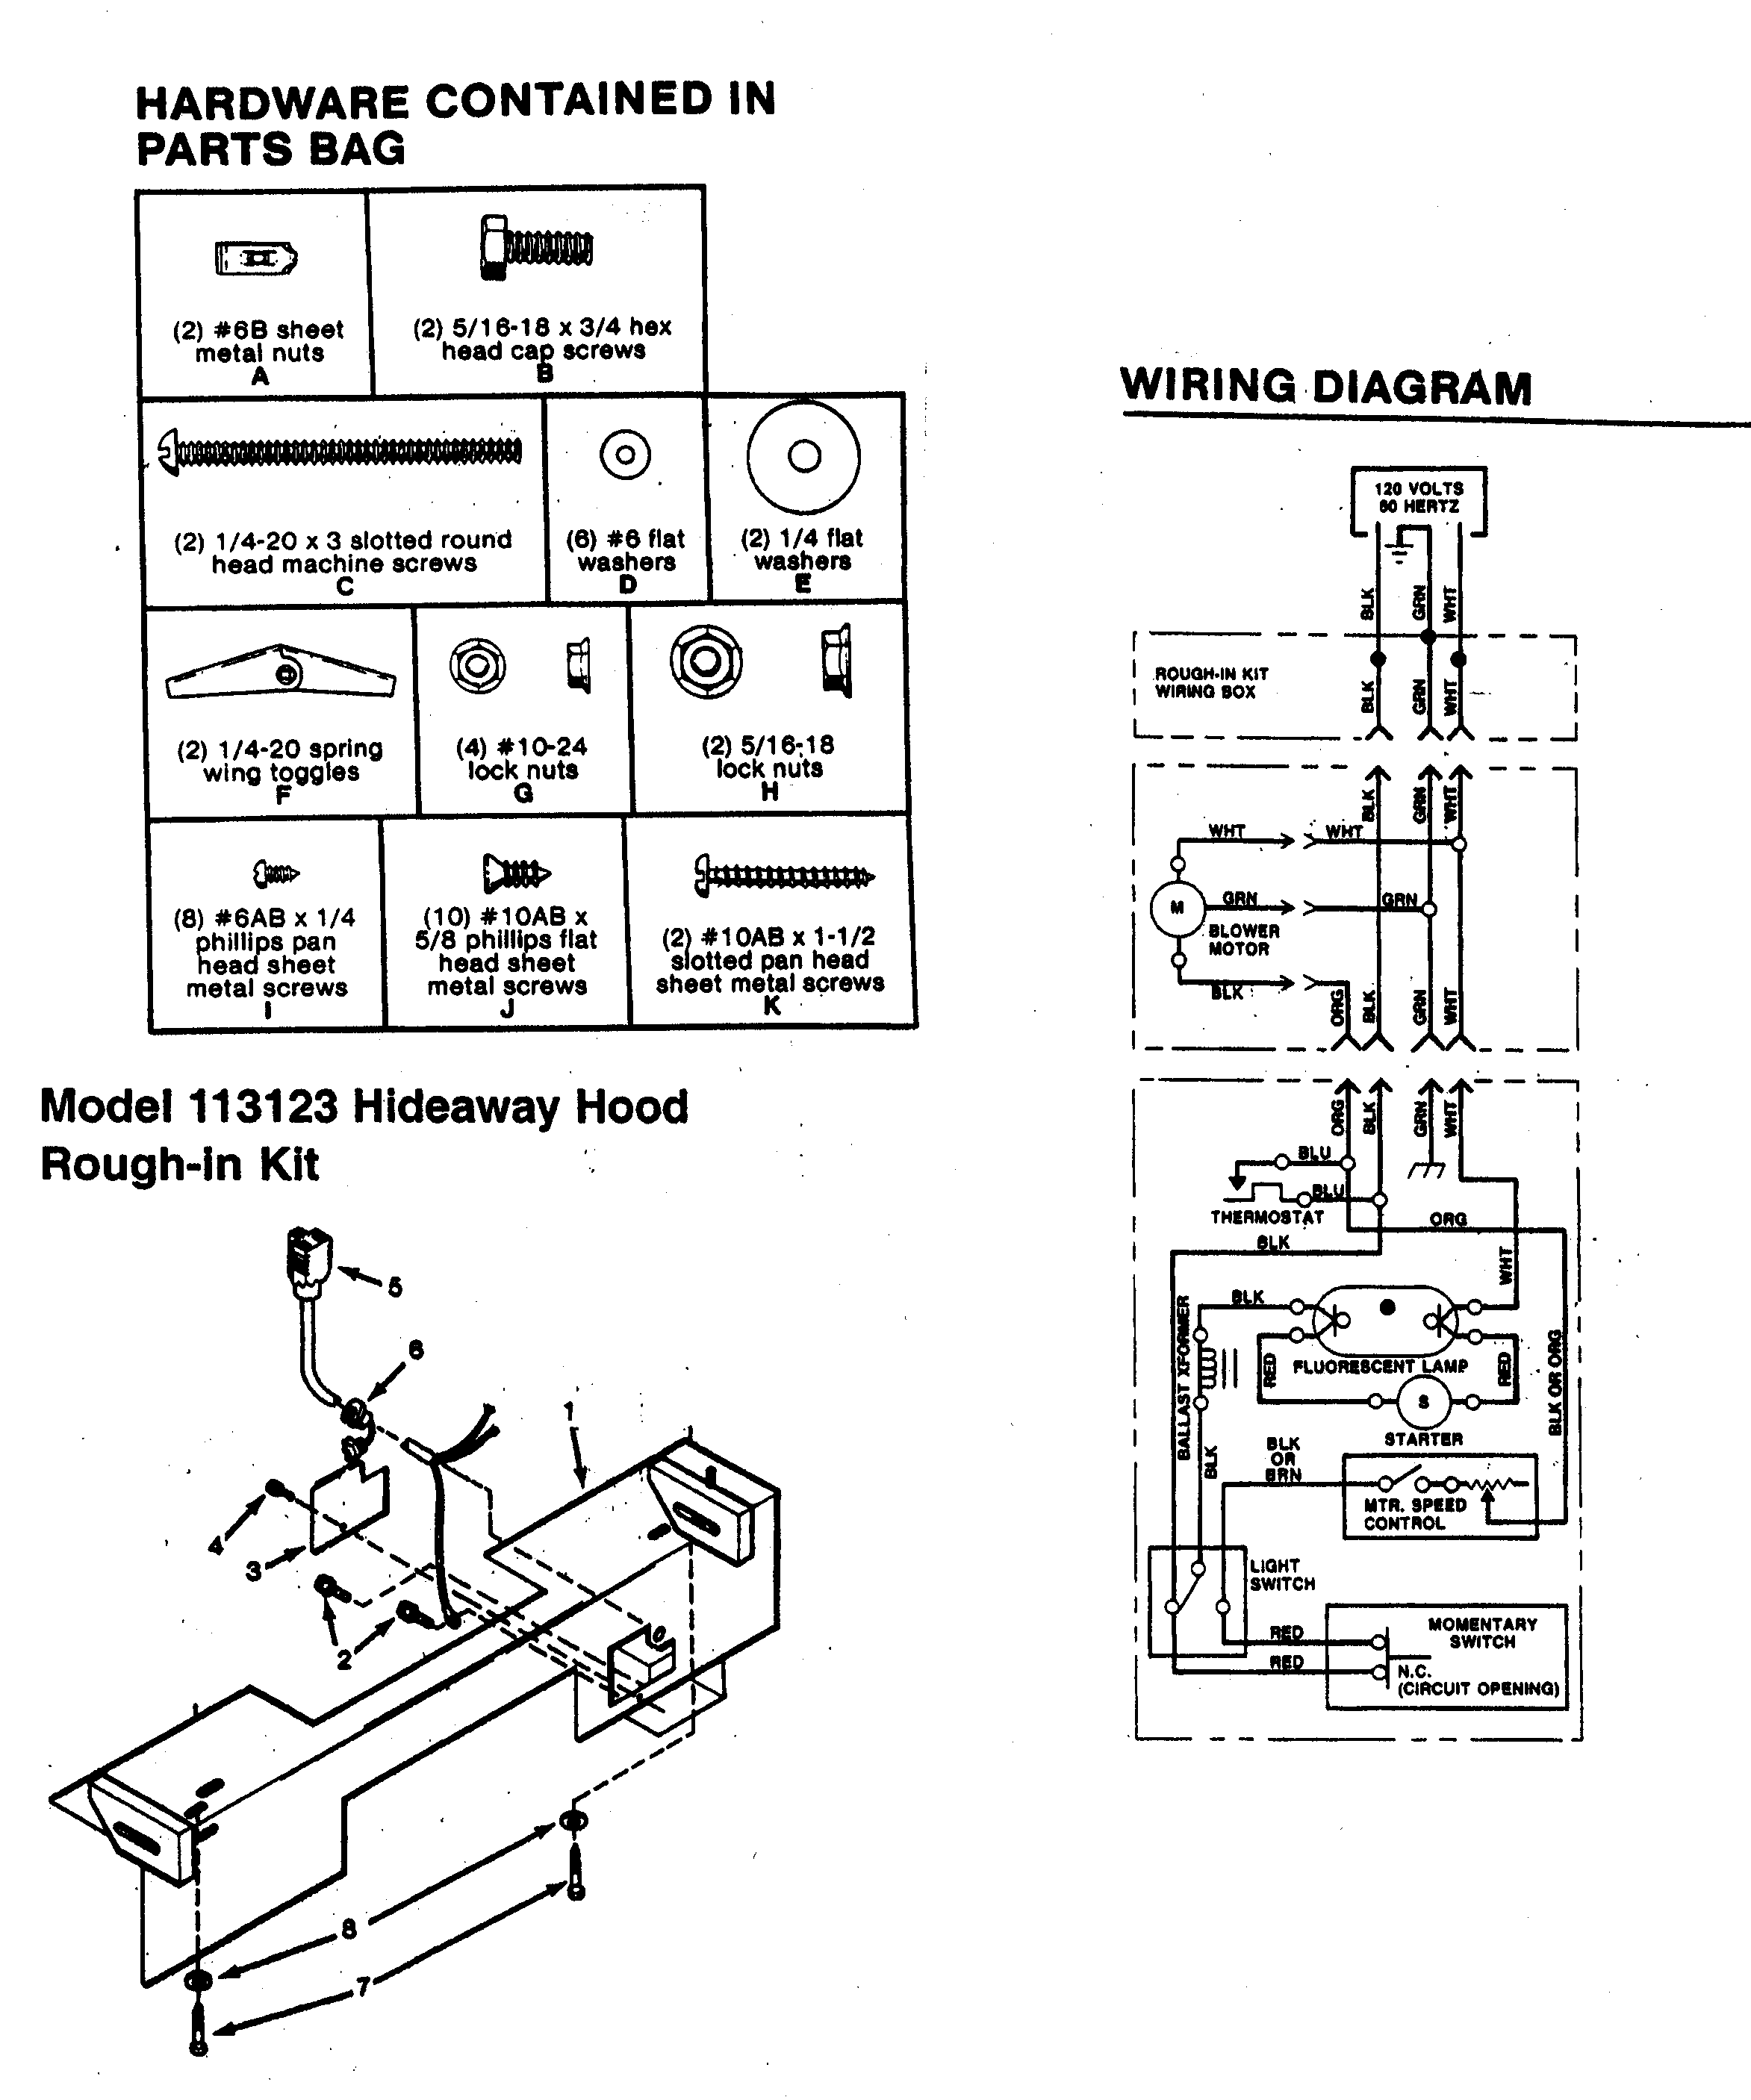 Wiring Diagram For Nutone Intercom 34 Images Apartment 50026113 00002resize6652c797 Heater Hunter